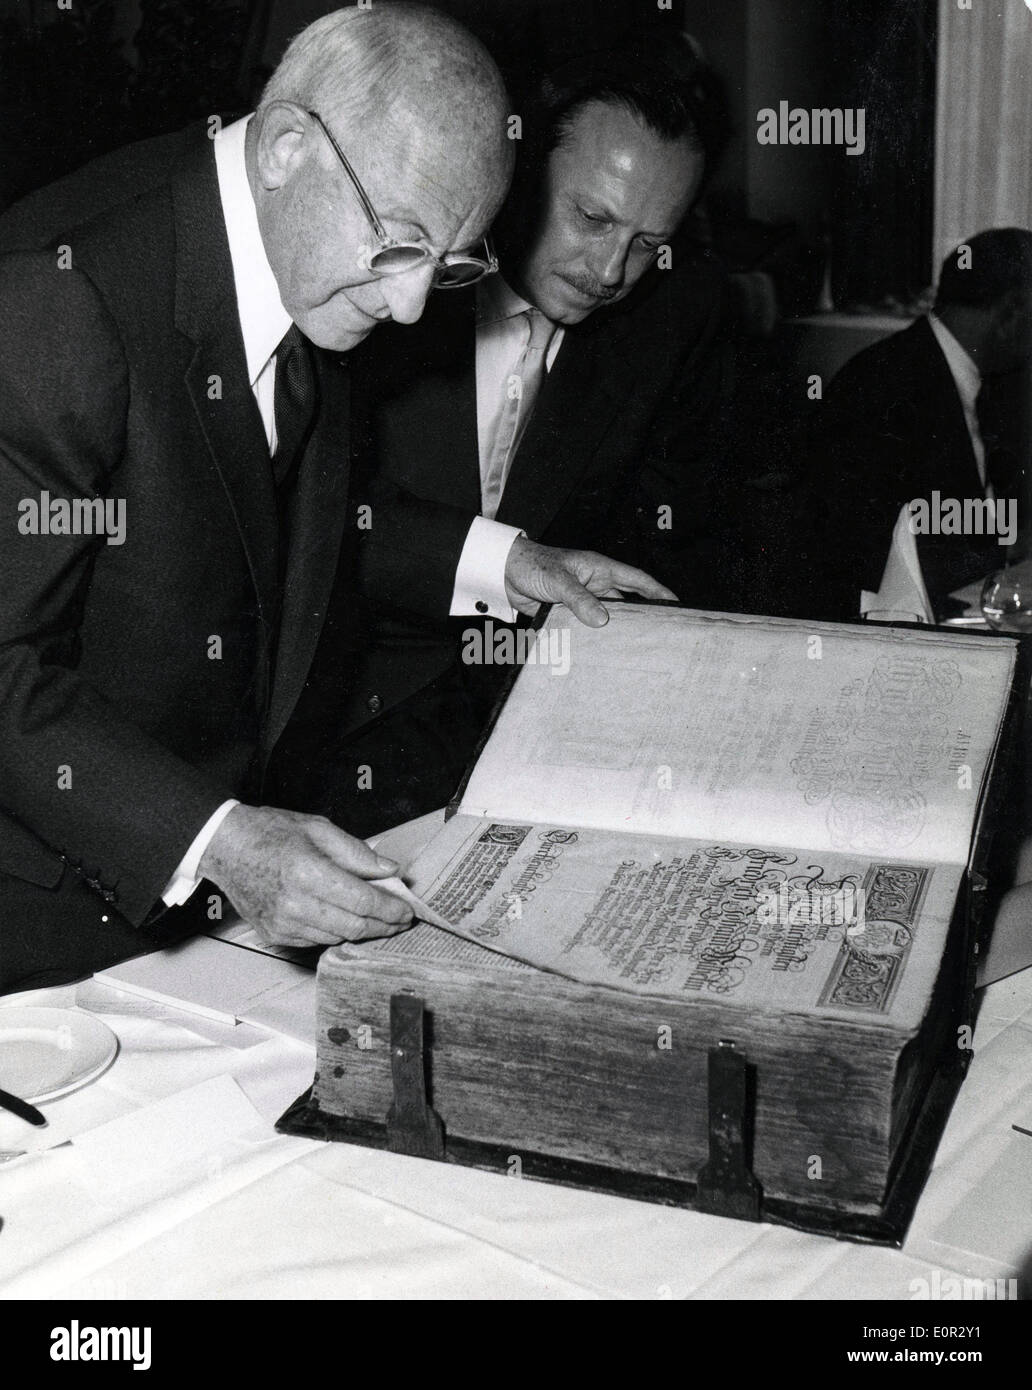 Oct 24, 1957 - Berlin, Germany - CECIL DEMILLE is presented with the Electoral Bible of 1798 by H. SCHAEFER during Stock Photo